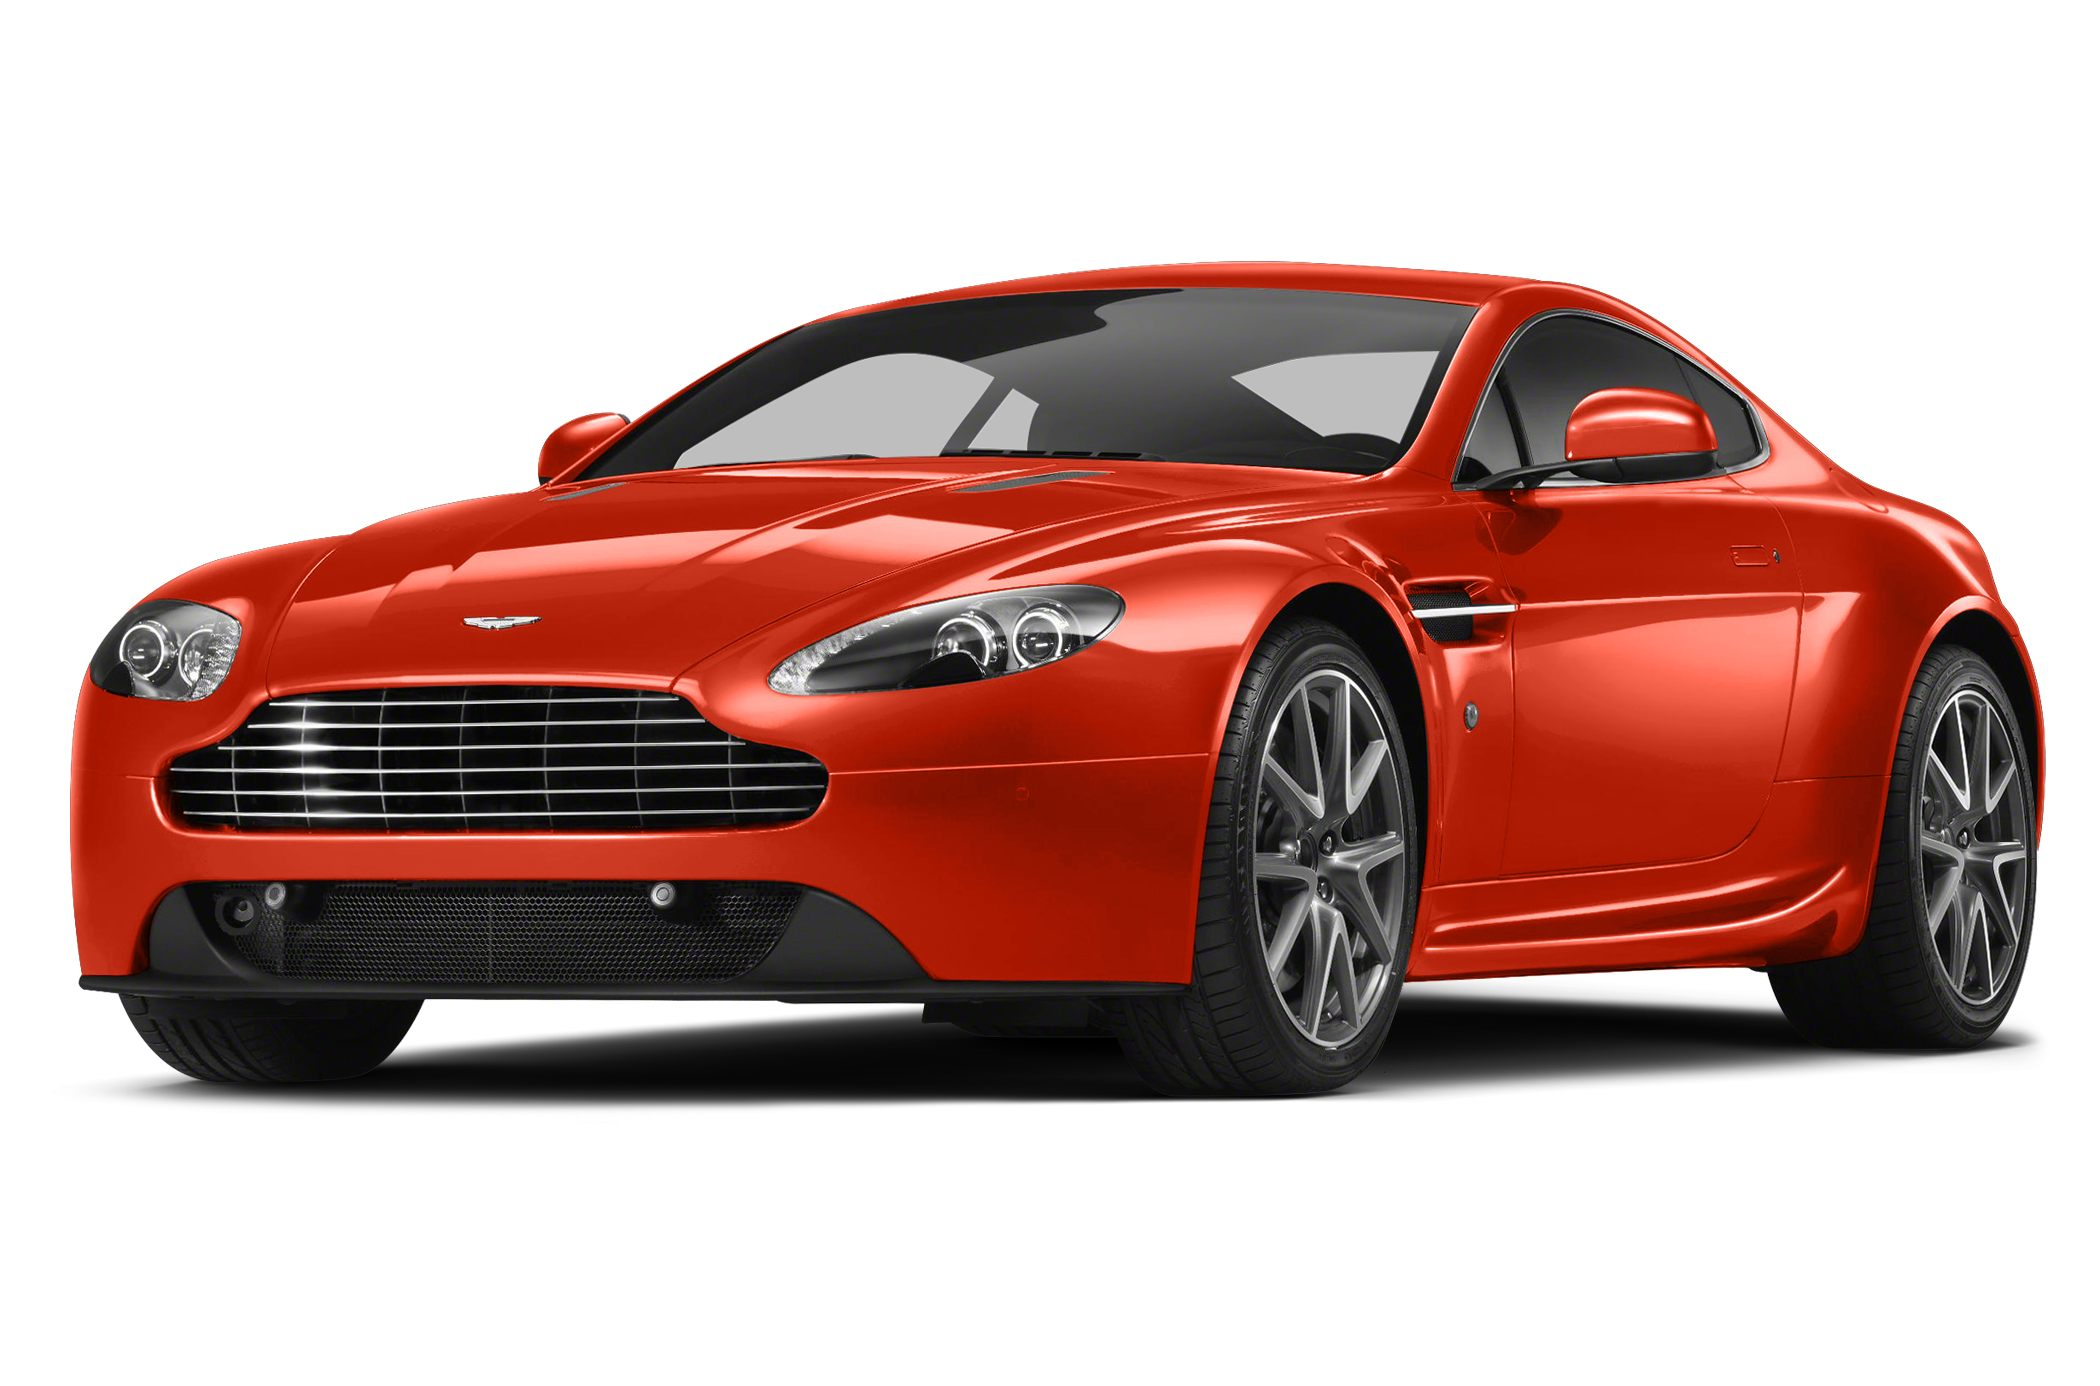 2016 Aston Martin V8 Vantage vs 2016 Ferrari California and 2016